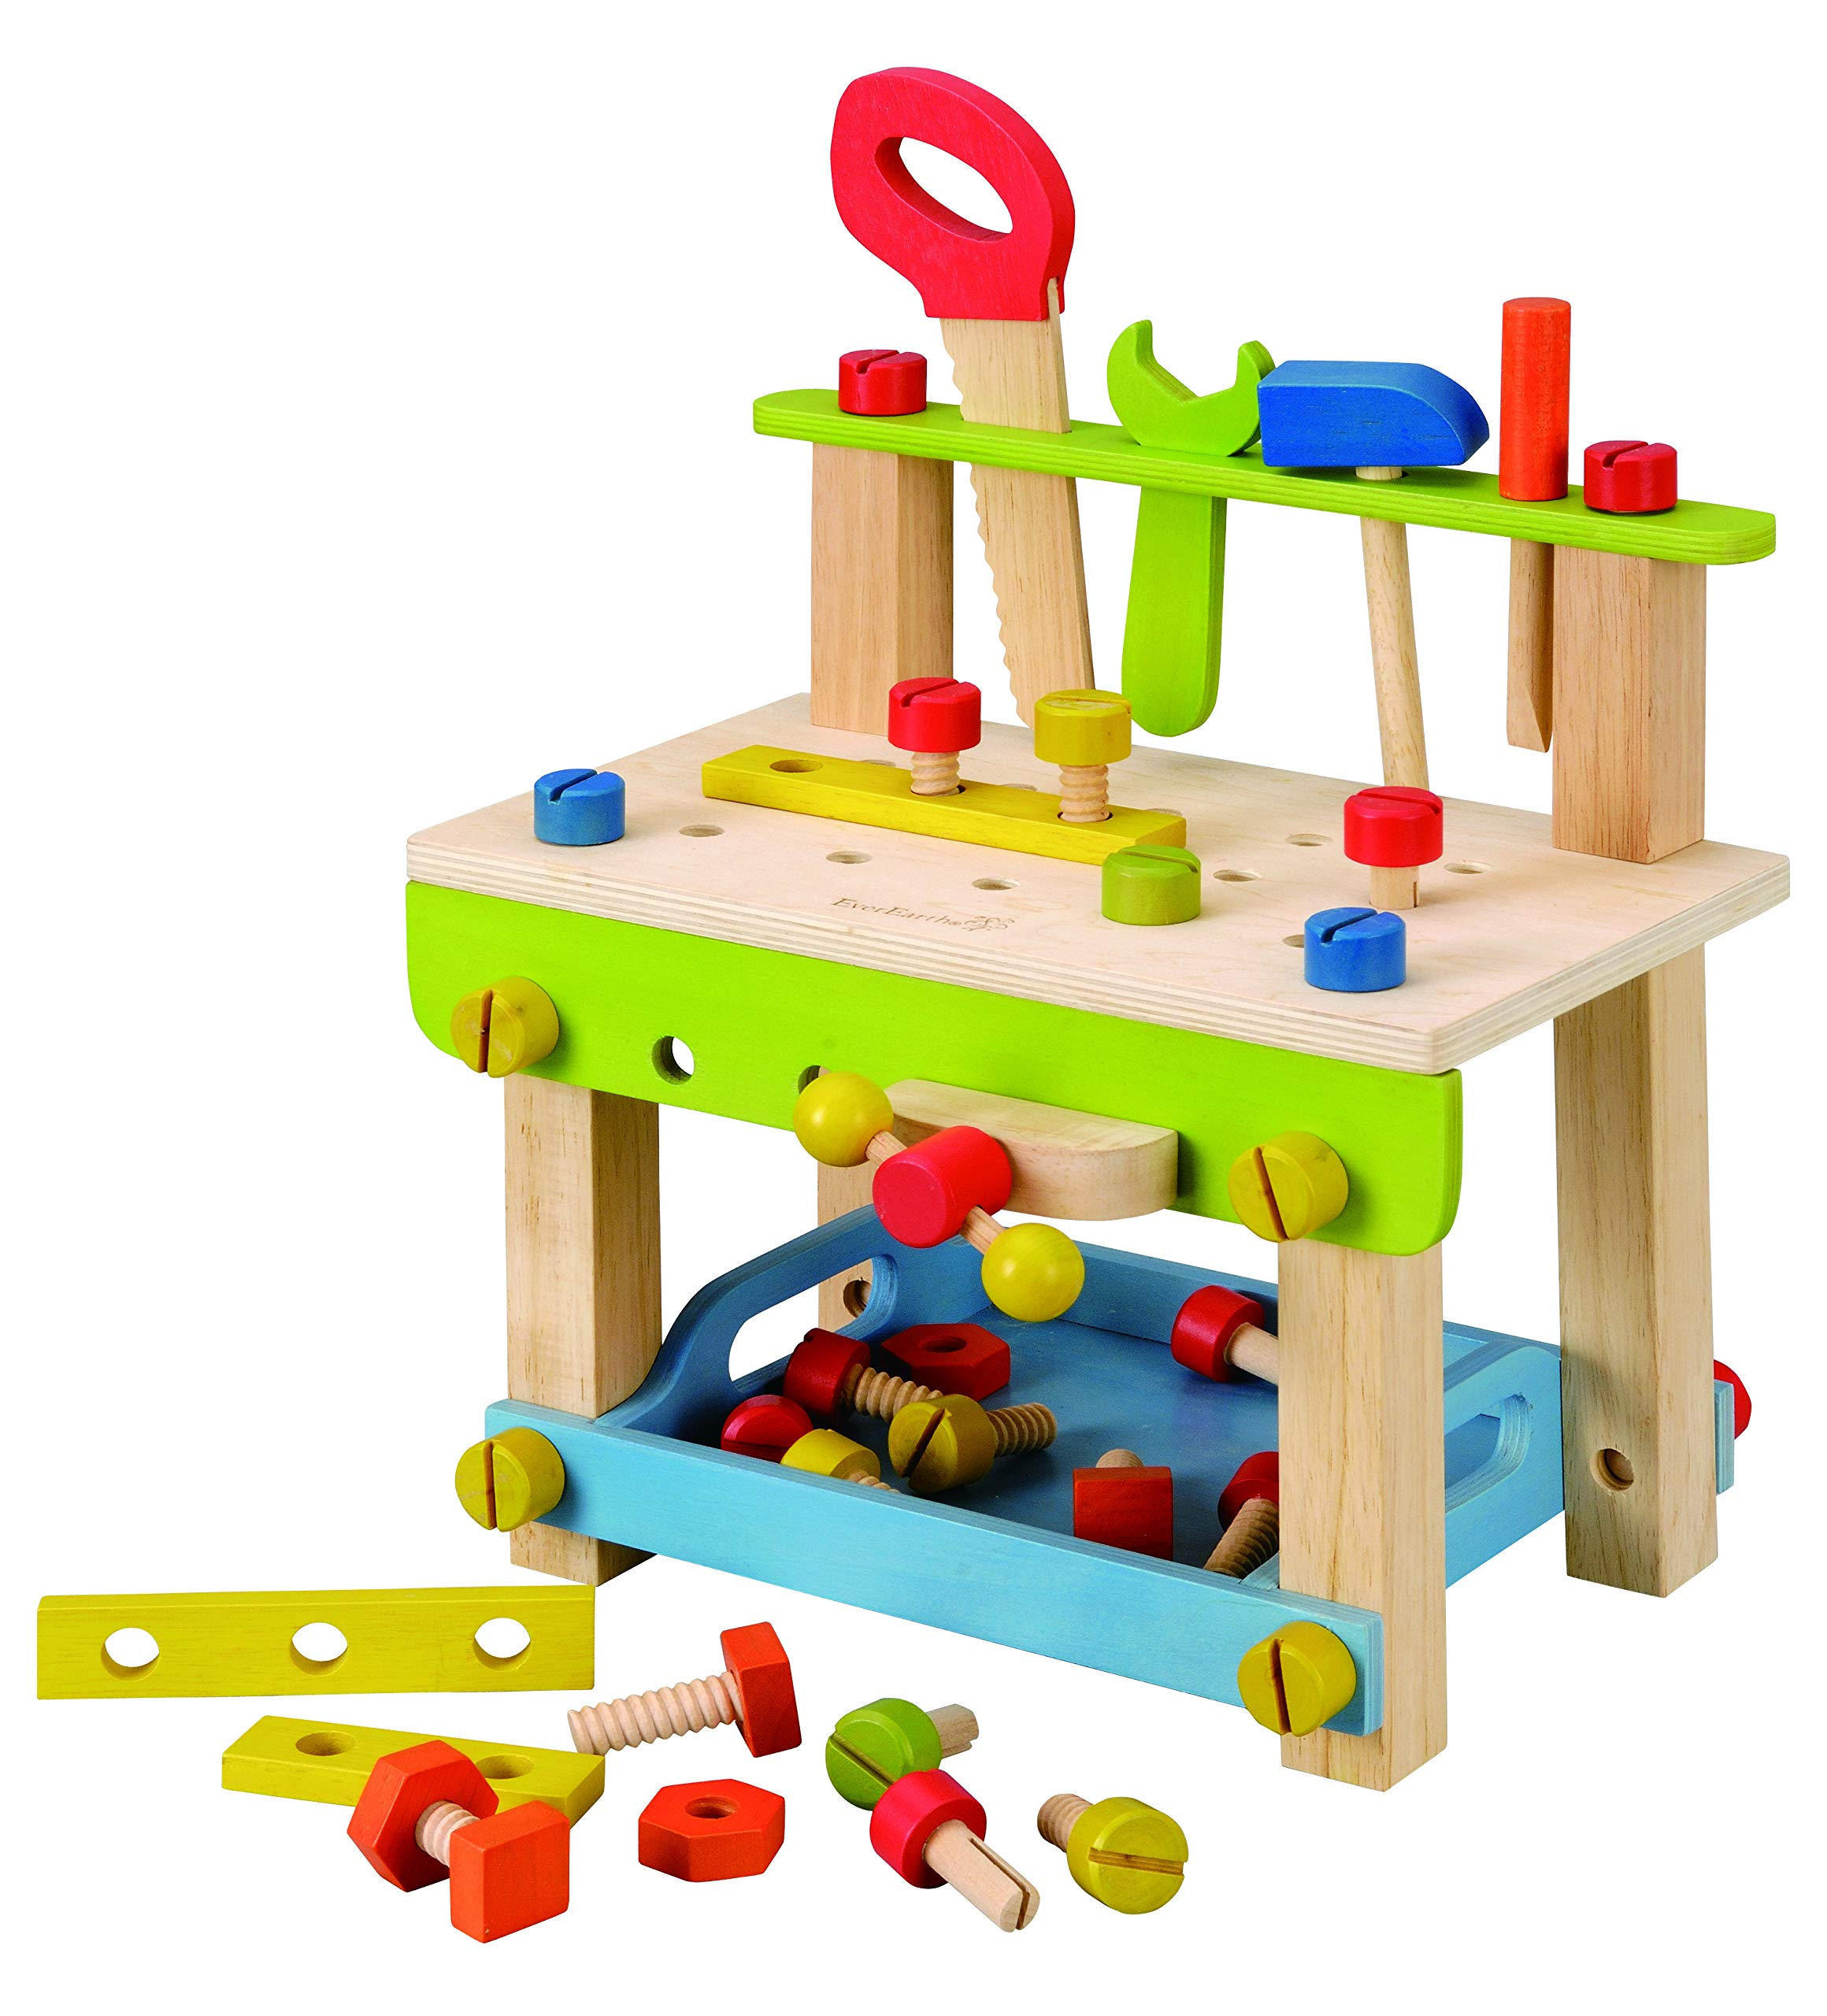 EverEarth Toddler Workbench with Tools. Wooden Building Set Hammer Toy by EverEarth